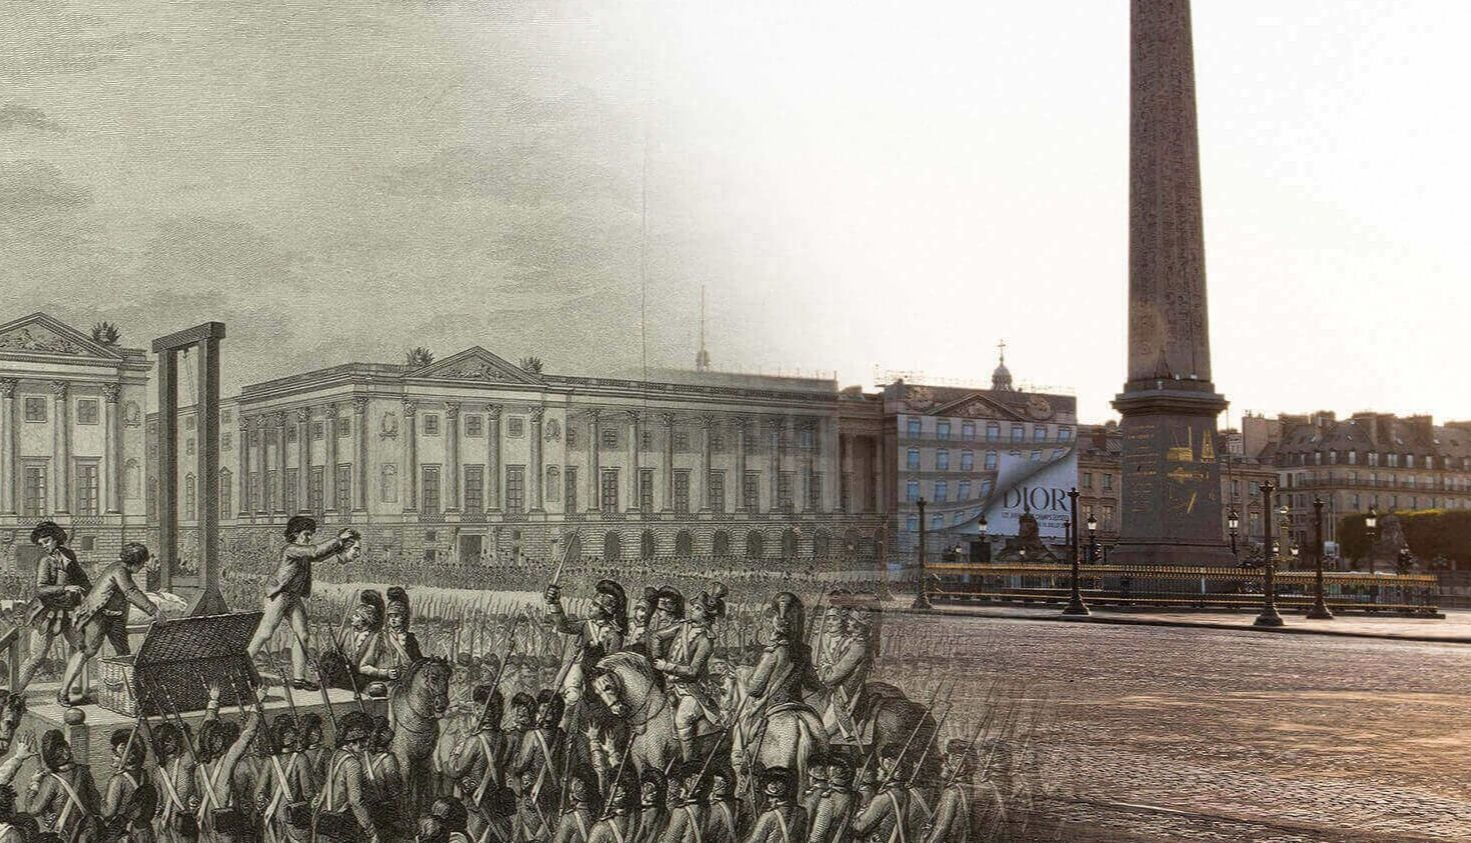 Place de la Concorde picture of yesterday and today